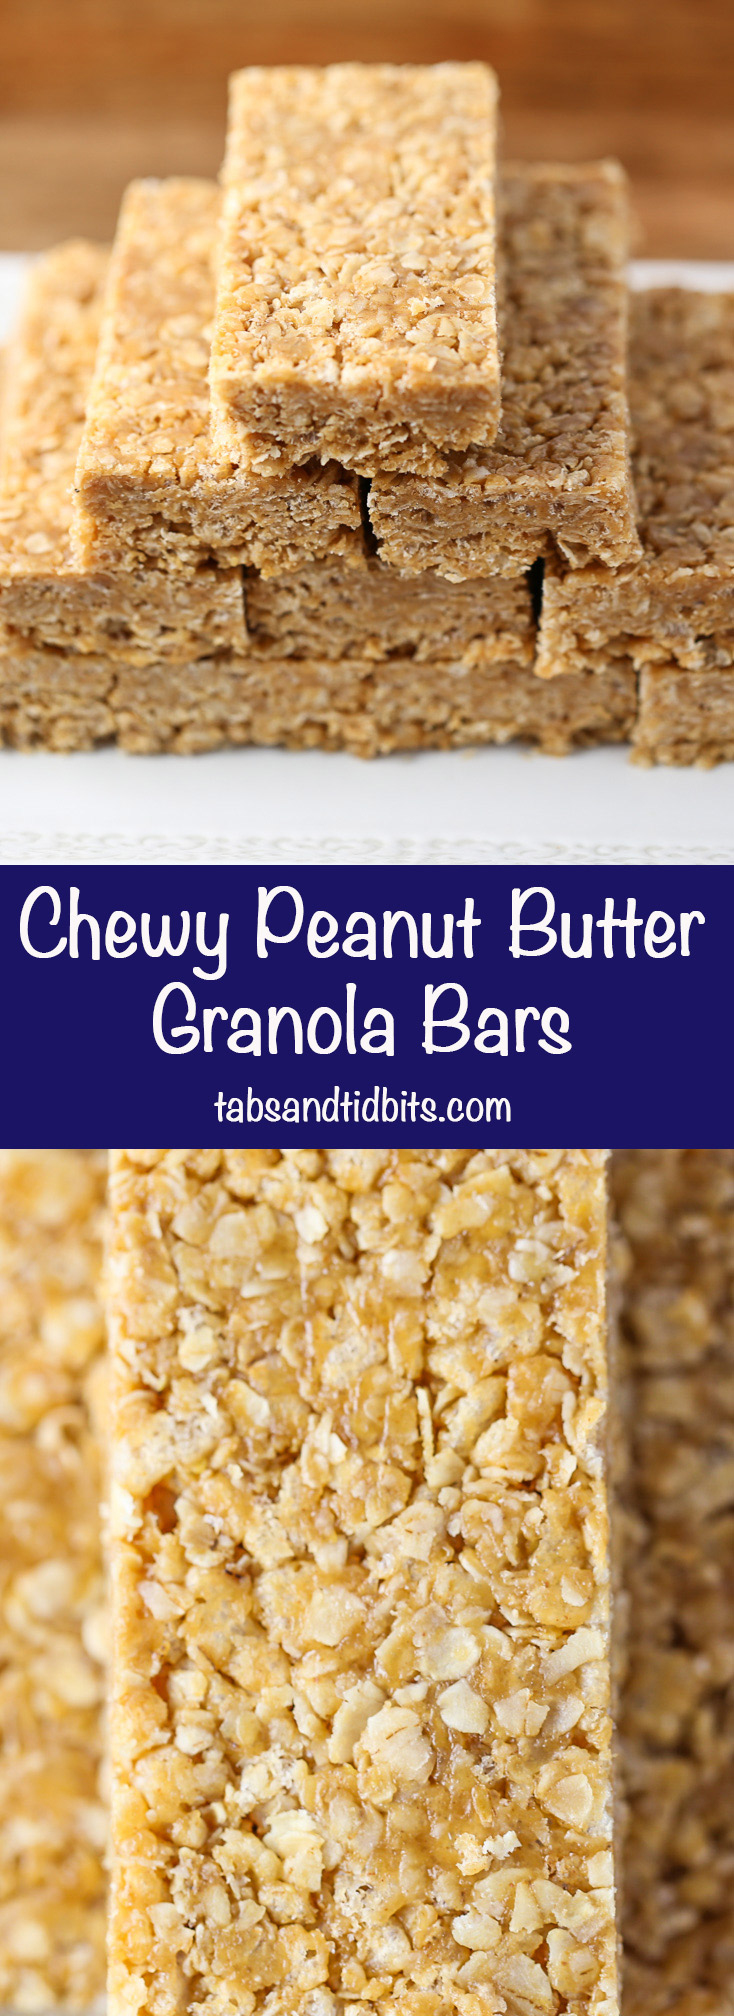 Chewy Peanut Butter Granola Bars - No baking required! Just a couple of minutes in the microwave & some time to chill in the refrigerator.